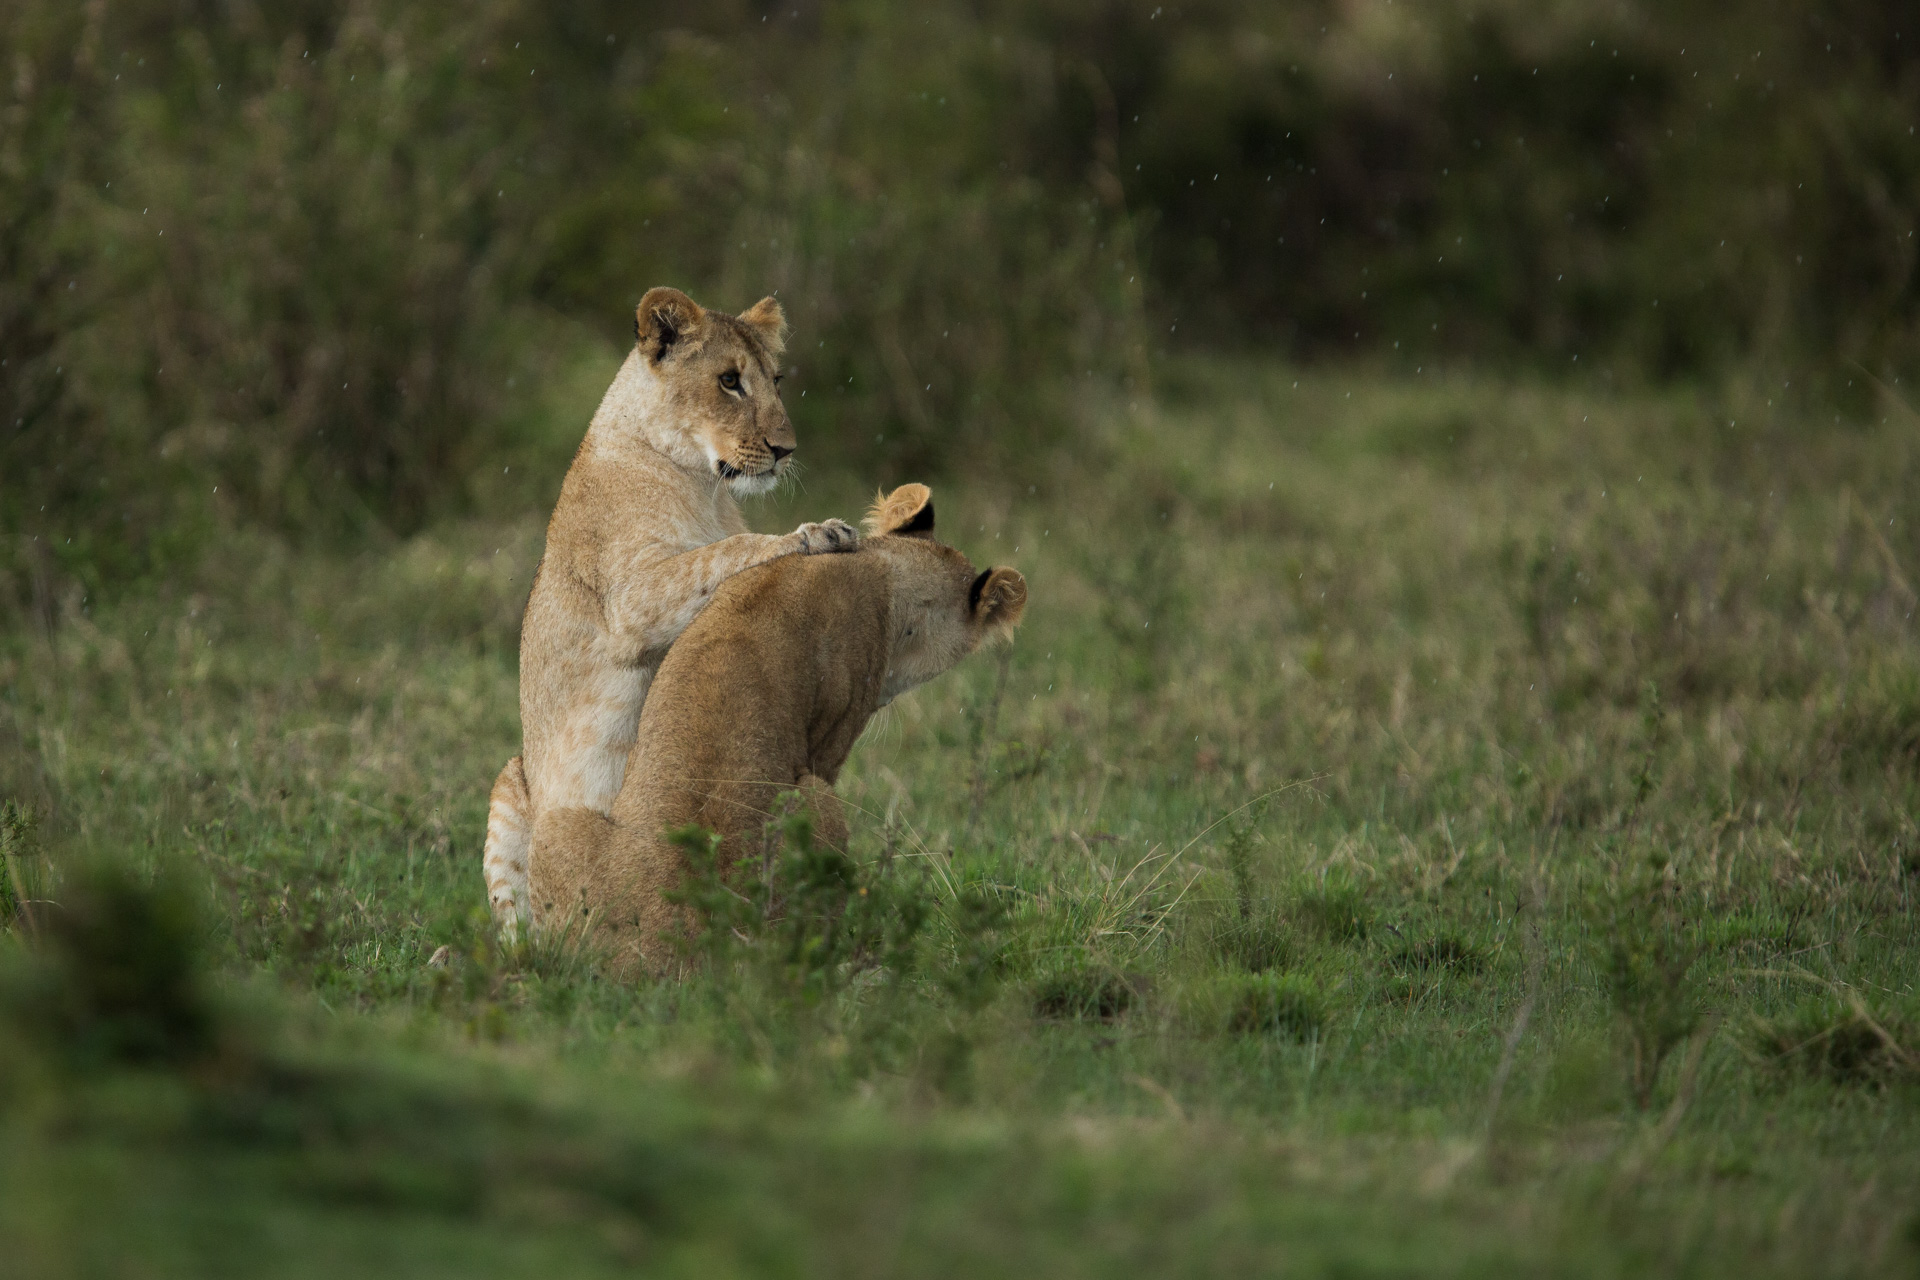 Lioness playing